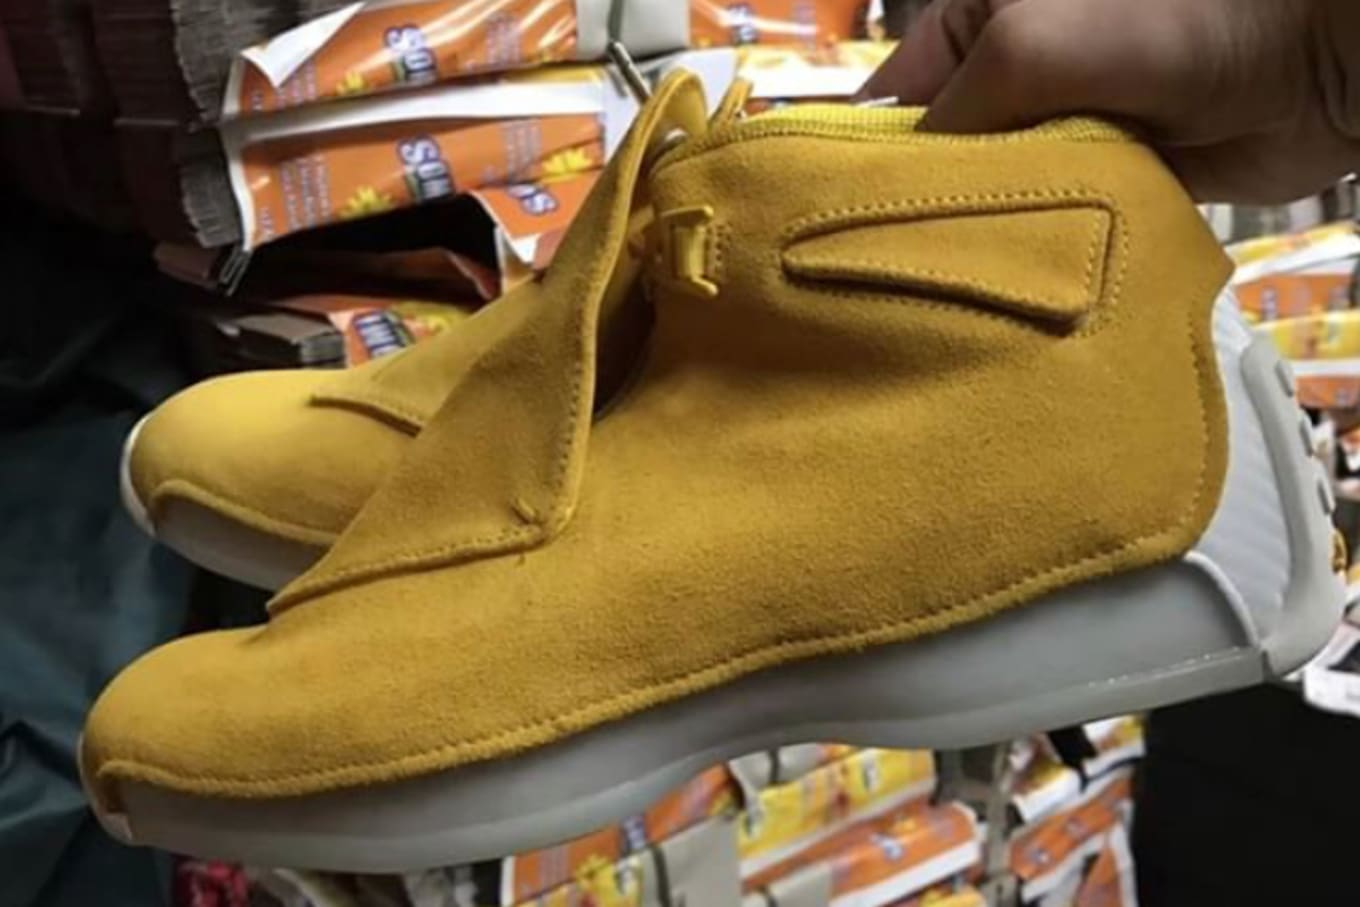 e45046a5c7af6b Buttery Suede on the Air Jordan 18. Another unexpected retro.